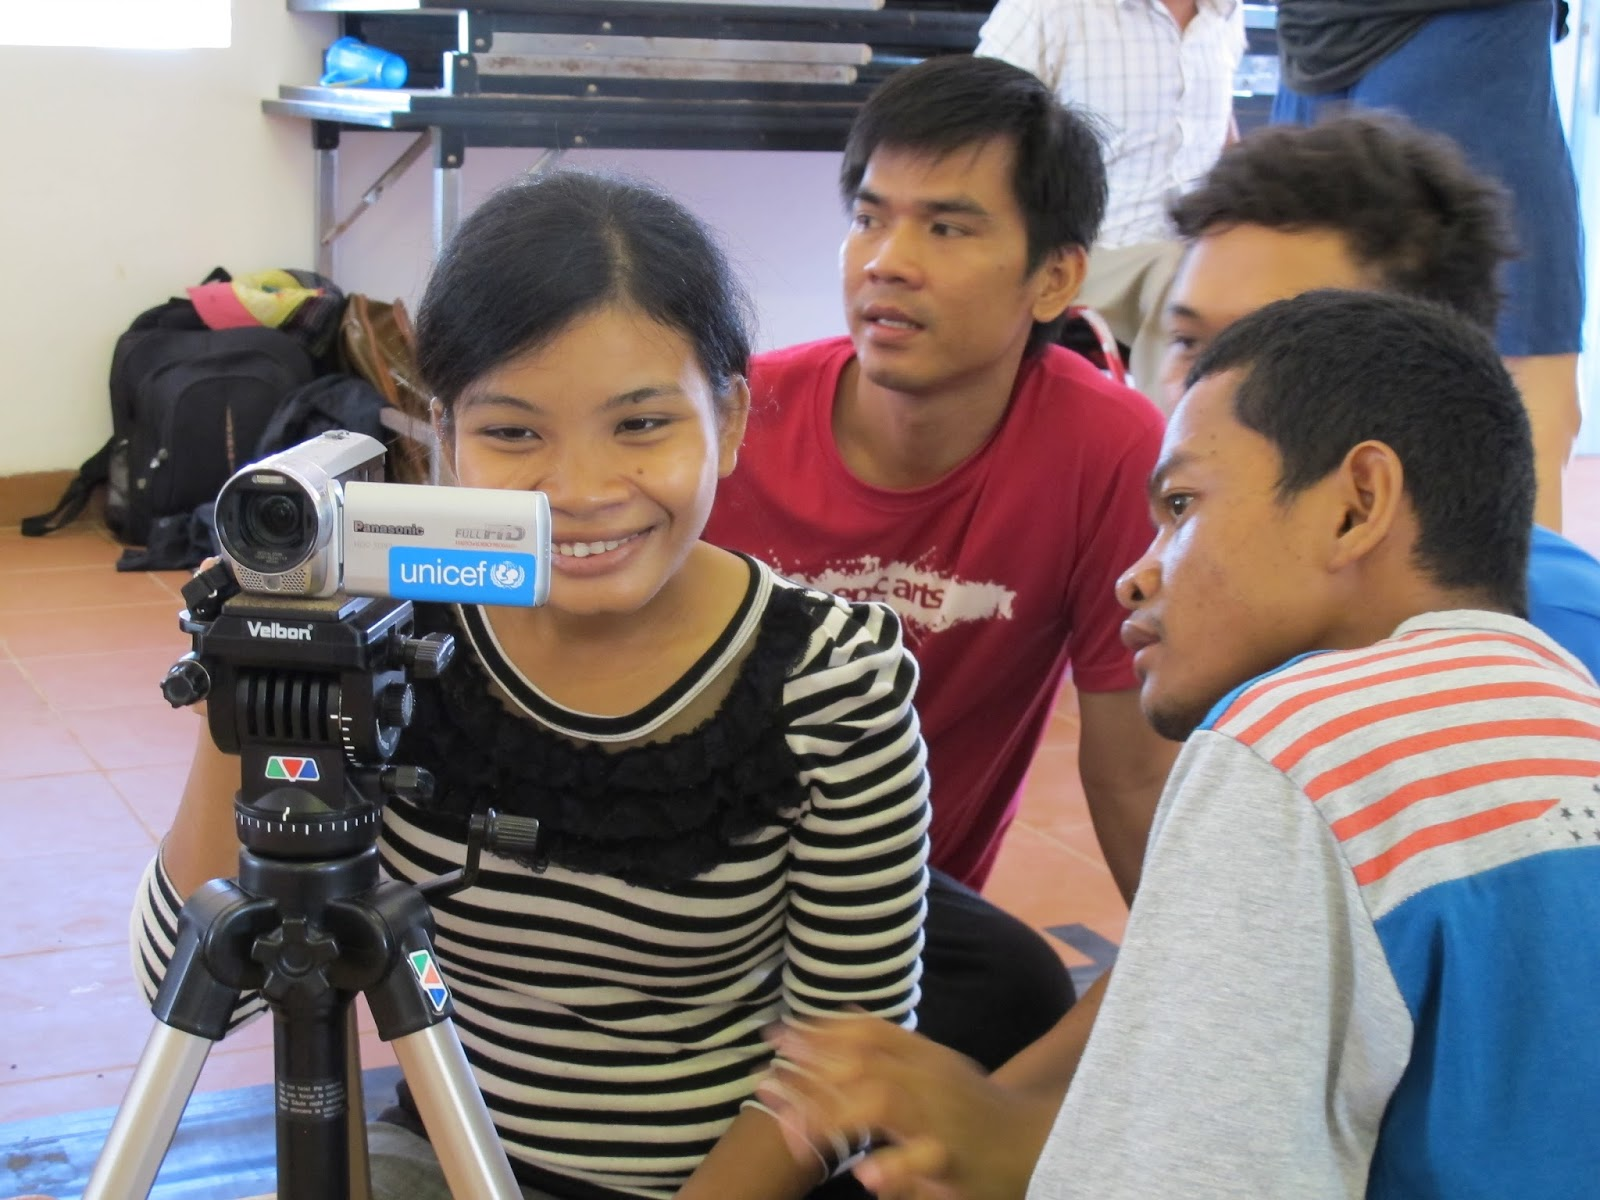 disabilities in cambodia Past conflicts have also contributed to high rates of disability in the cambodian  population: around one in five disabilities in cambodia is the result of war or.